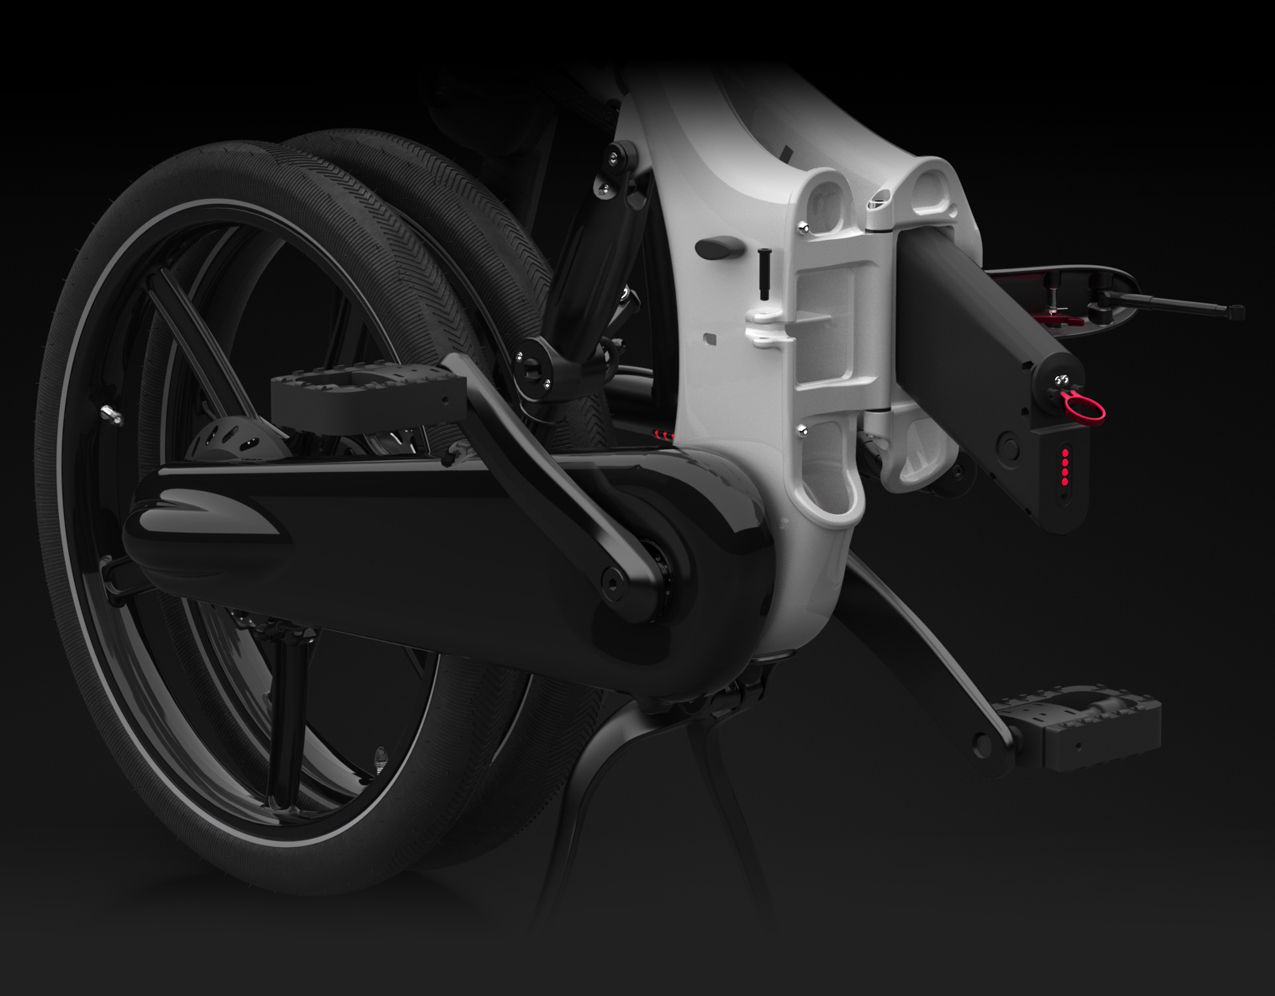 Compared to traditional bicycle frame sizes, the Gocycle's frame can fit more people more comfortably because of the Vgonomic frame design which provides reach adjustment, effective top tube adjustment, and a longer wheel base, yet with a shorter and more compact overall length.